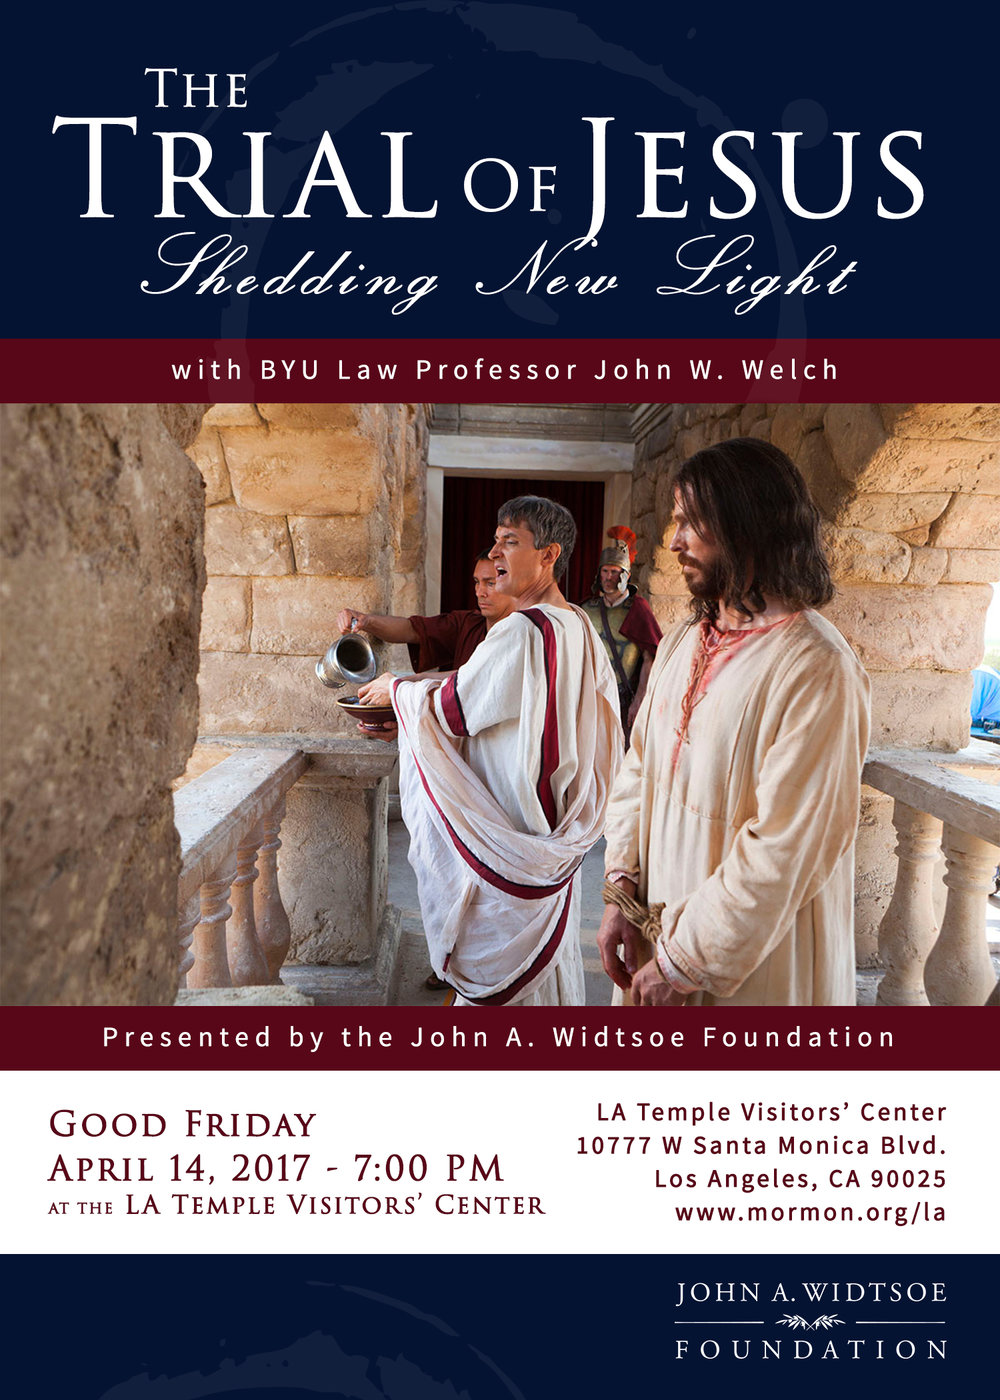 Trial of Jesus 5x7 emailed invitation.jpg